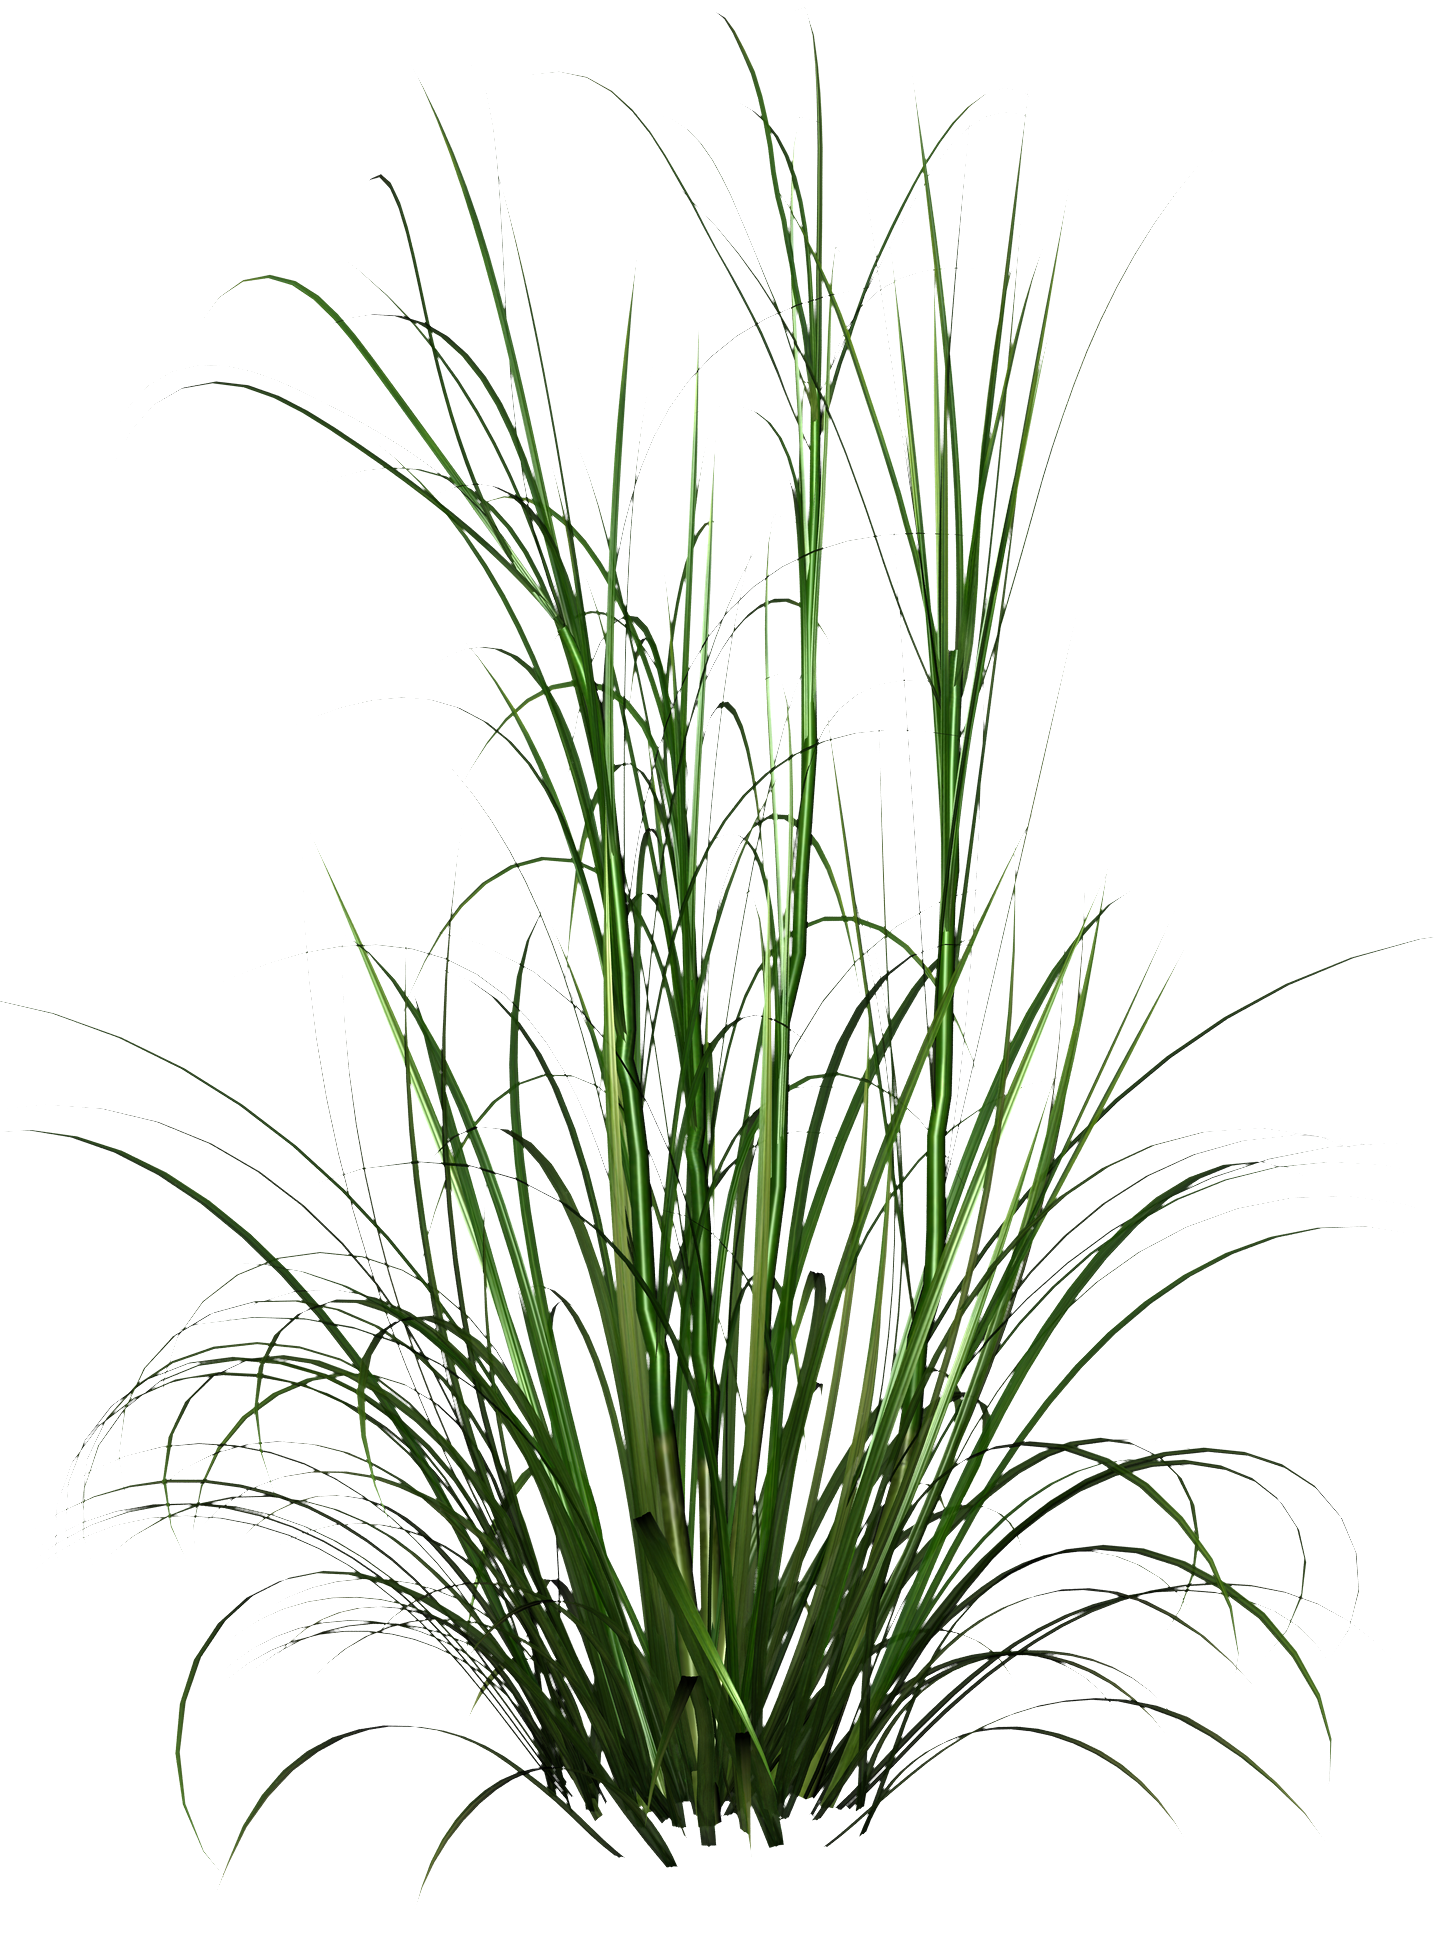 Tall Grass Png HD Photo image #44170